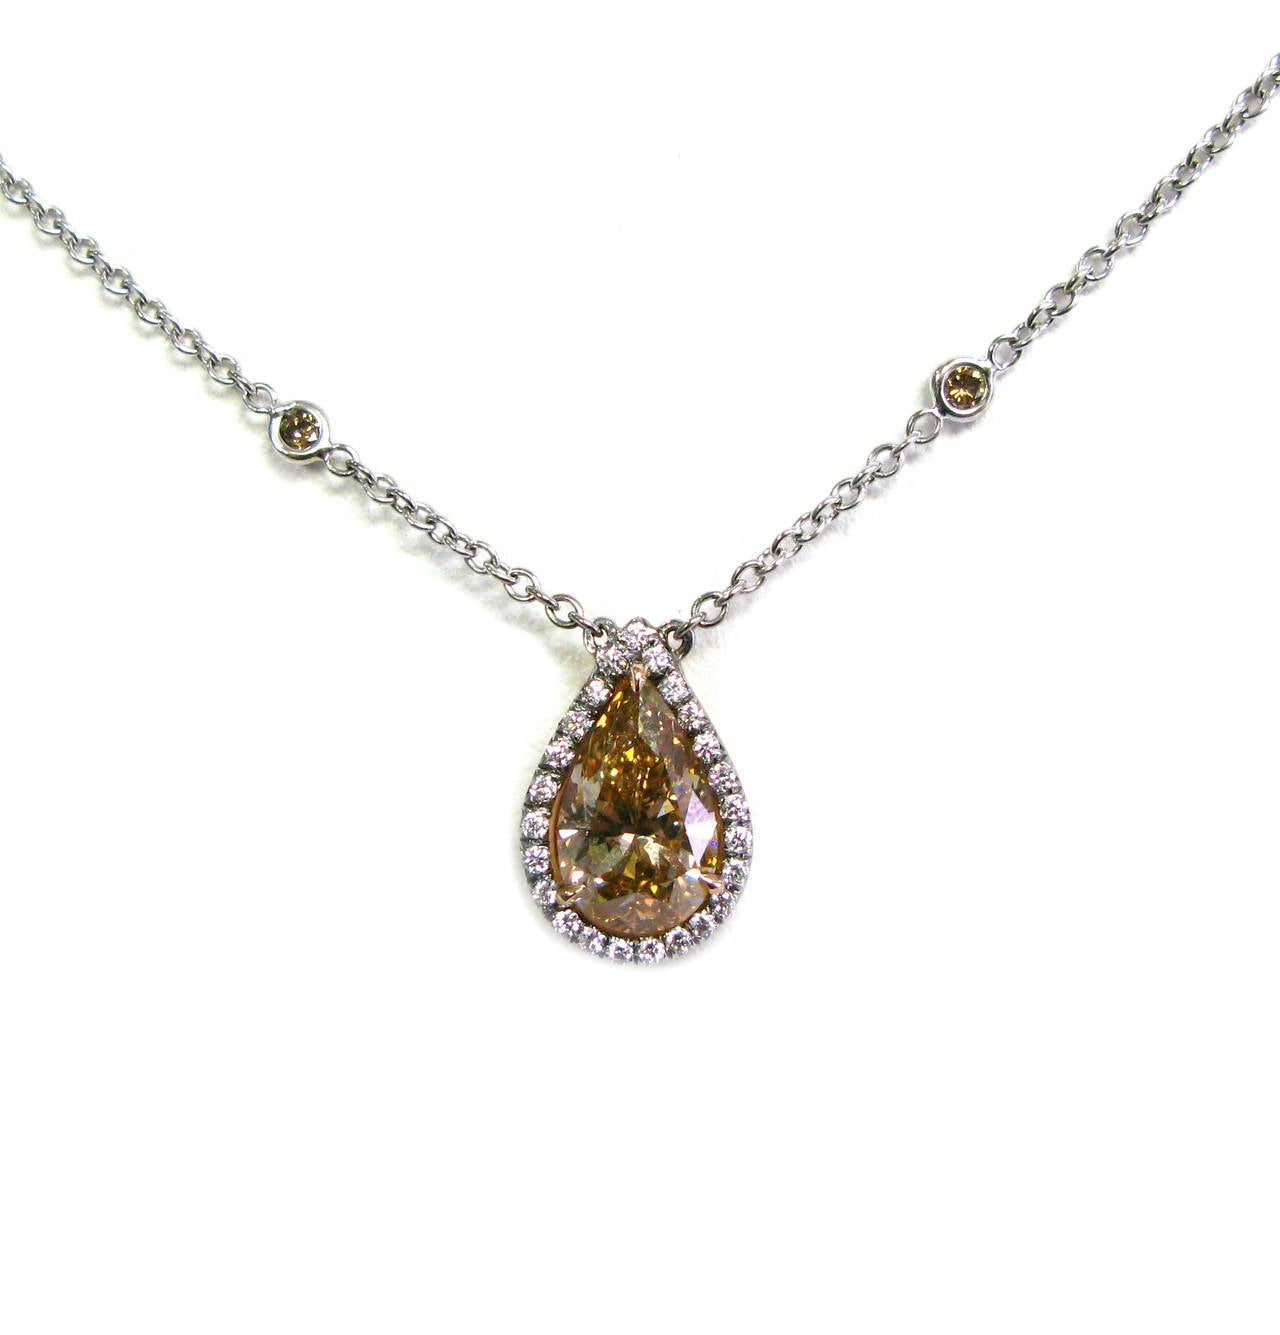 The stunning 18kt pink gold pendant features a unique GIA certified 2.35ct, Fancy Orange Brown color pear shape diamond surrounded by a 0.21ctw white round brilliant diamond pave frame and is suspended from a diamonds by the yard chain. You can wear